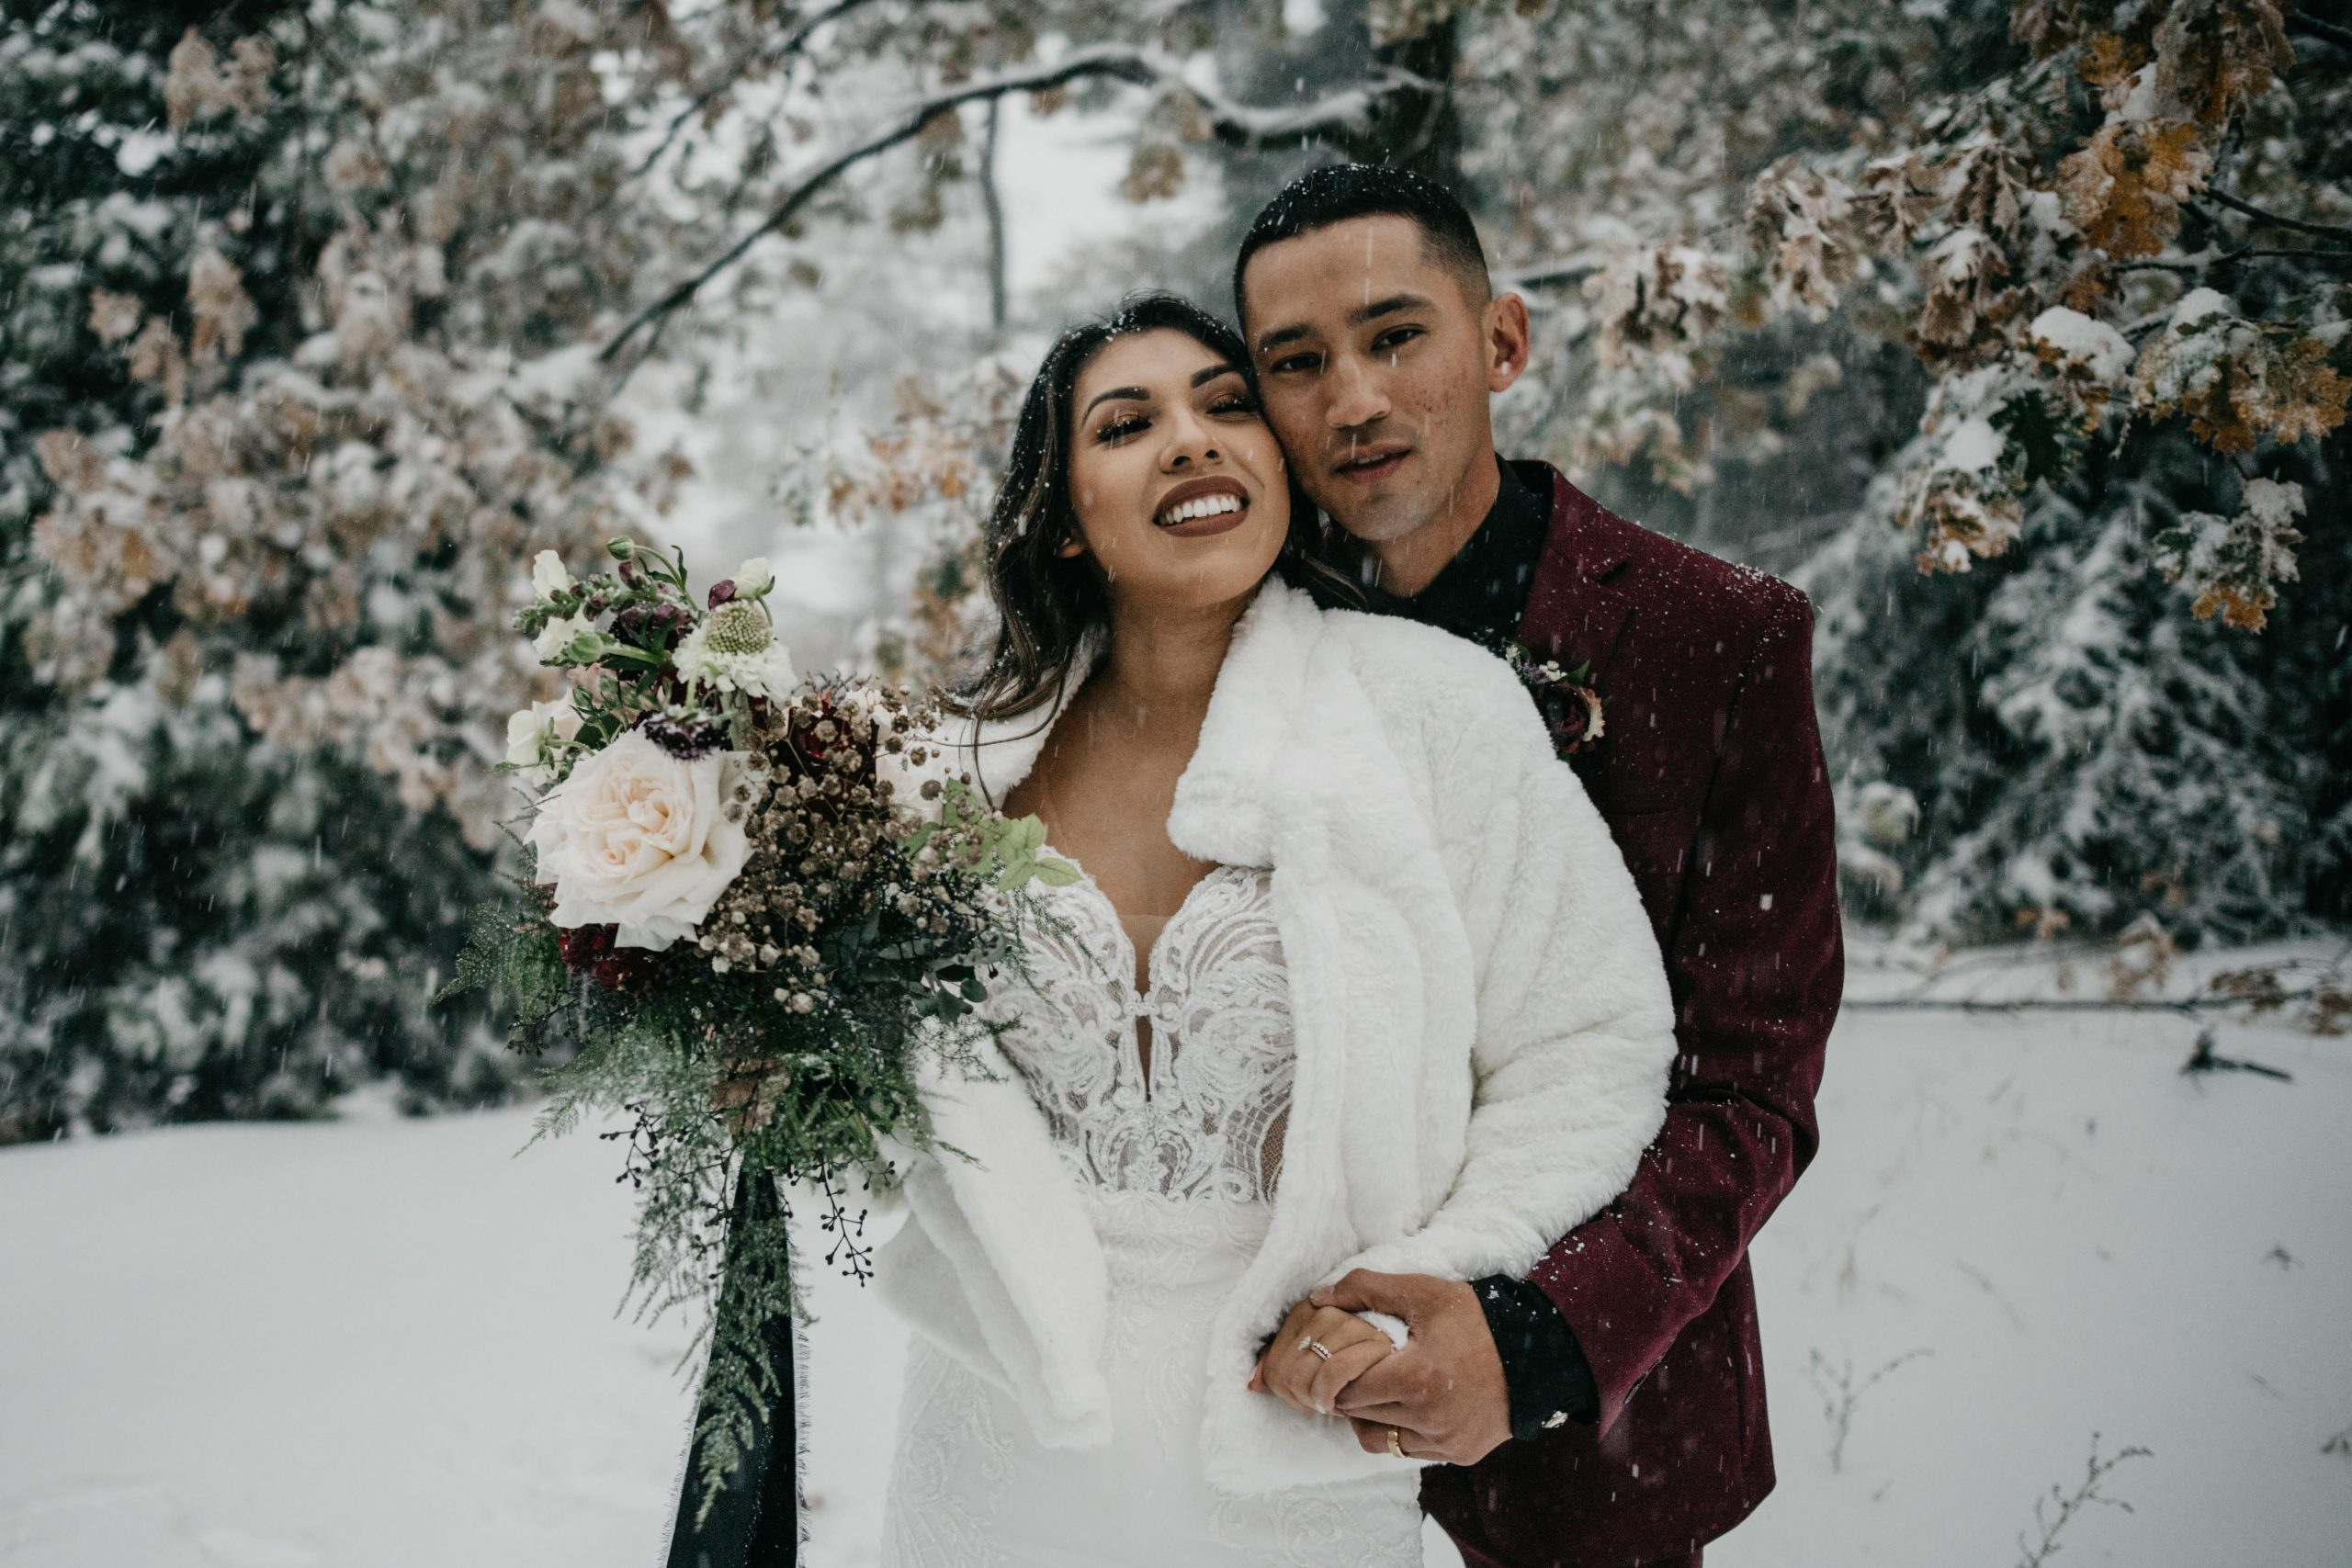 Bride and Groom portraits in the snow, image by Fatima Elreda Photo